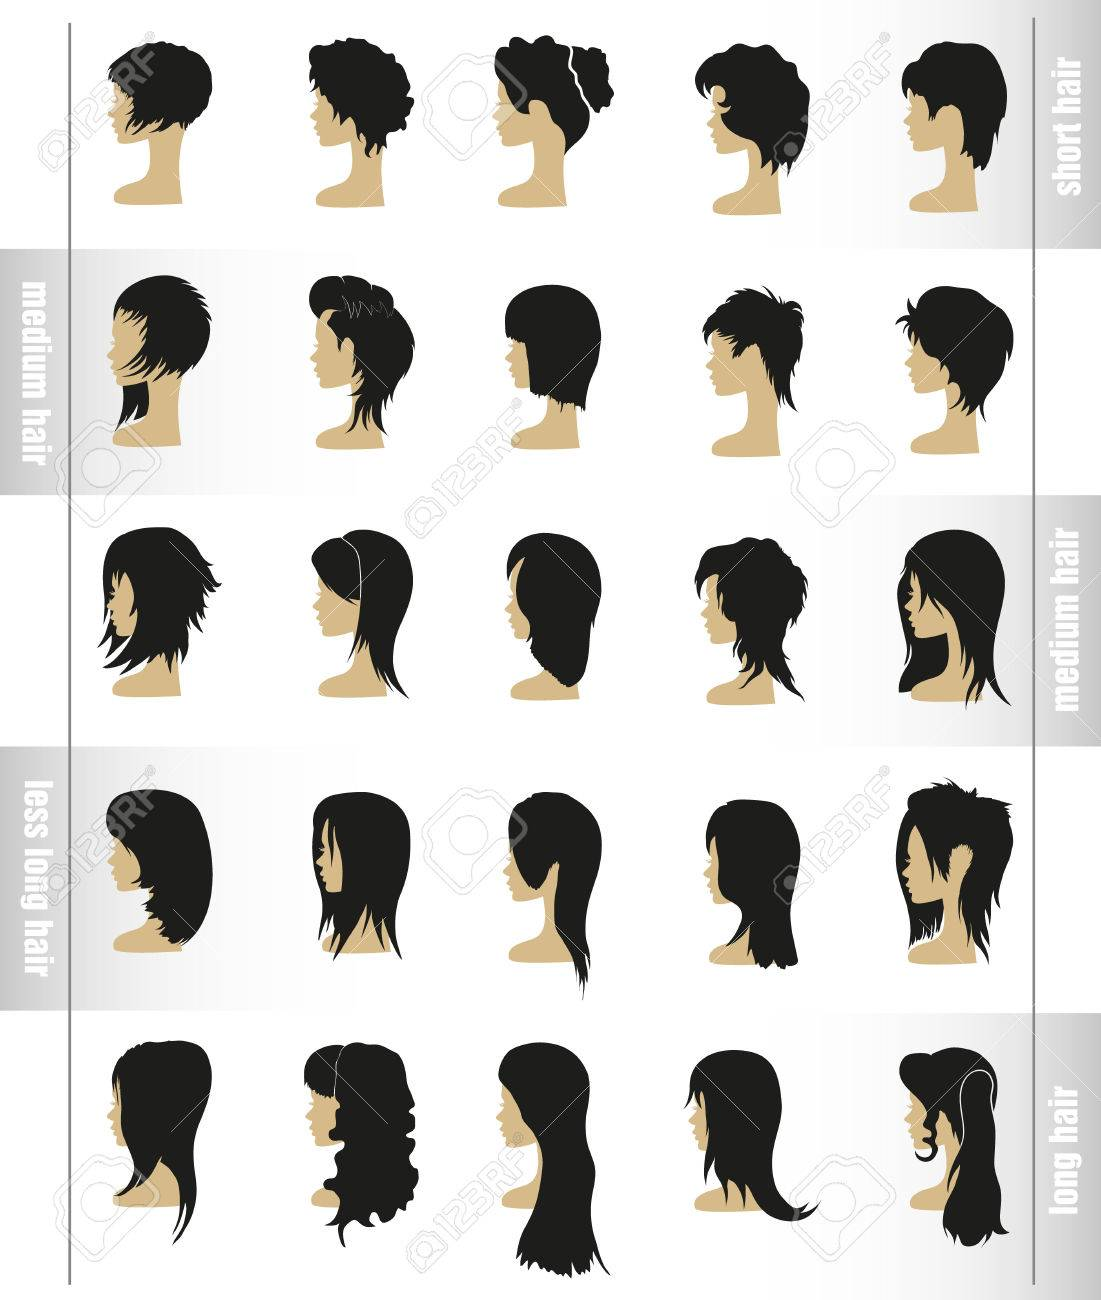 vector set of women s hairstyles and haircuts view profile royalty